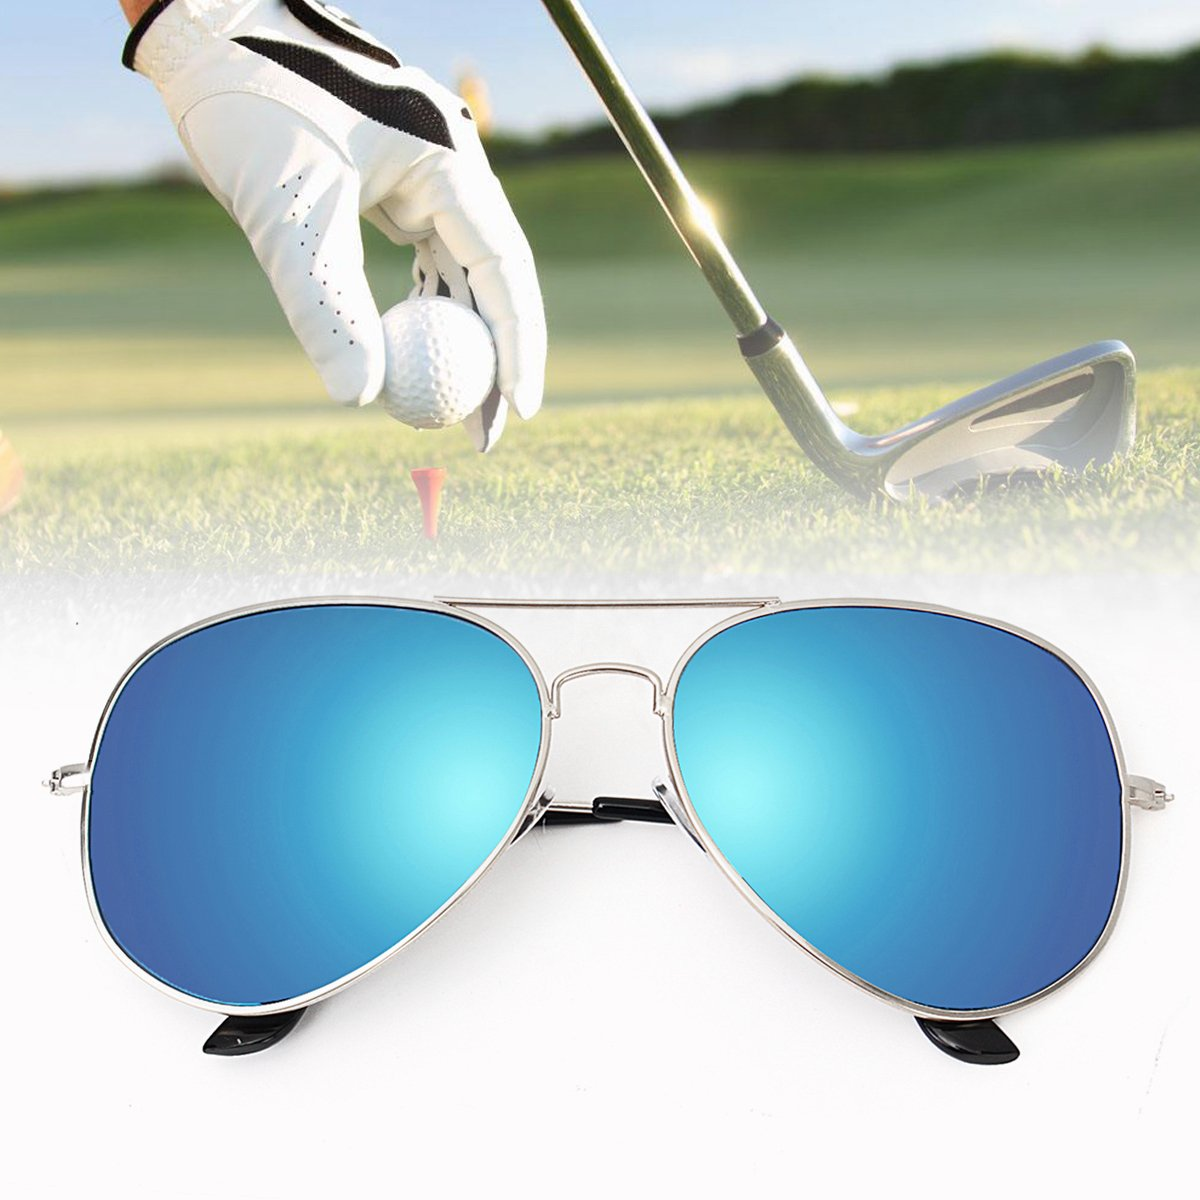 Golf Ball Finder Retro Blue Lens Glasses